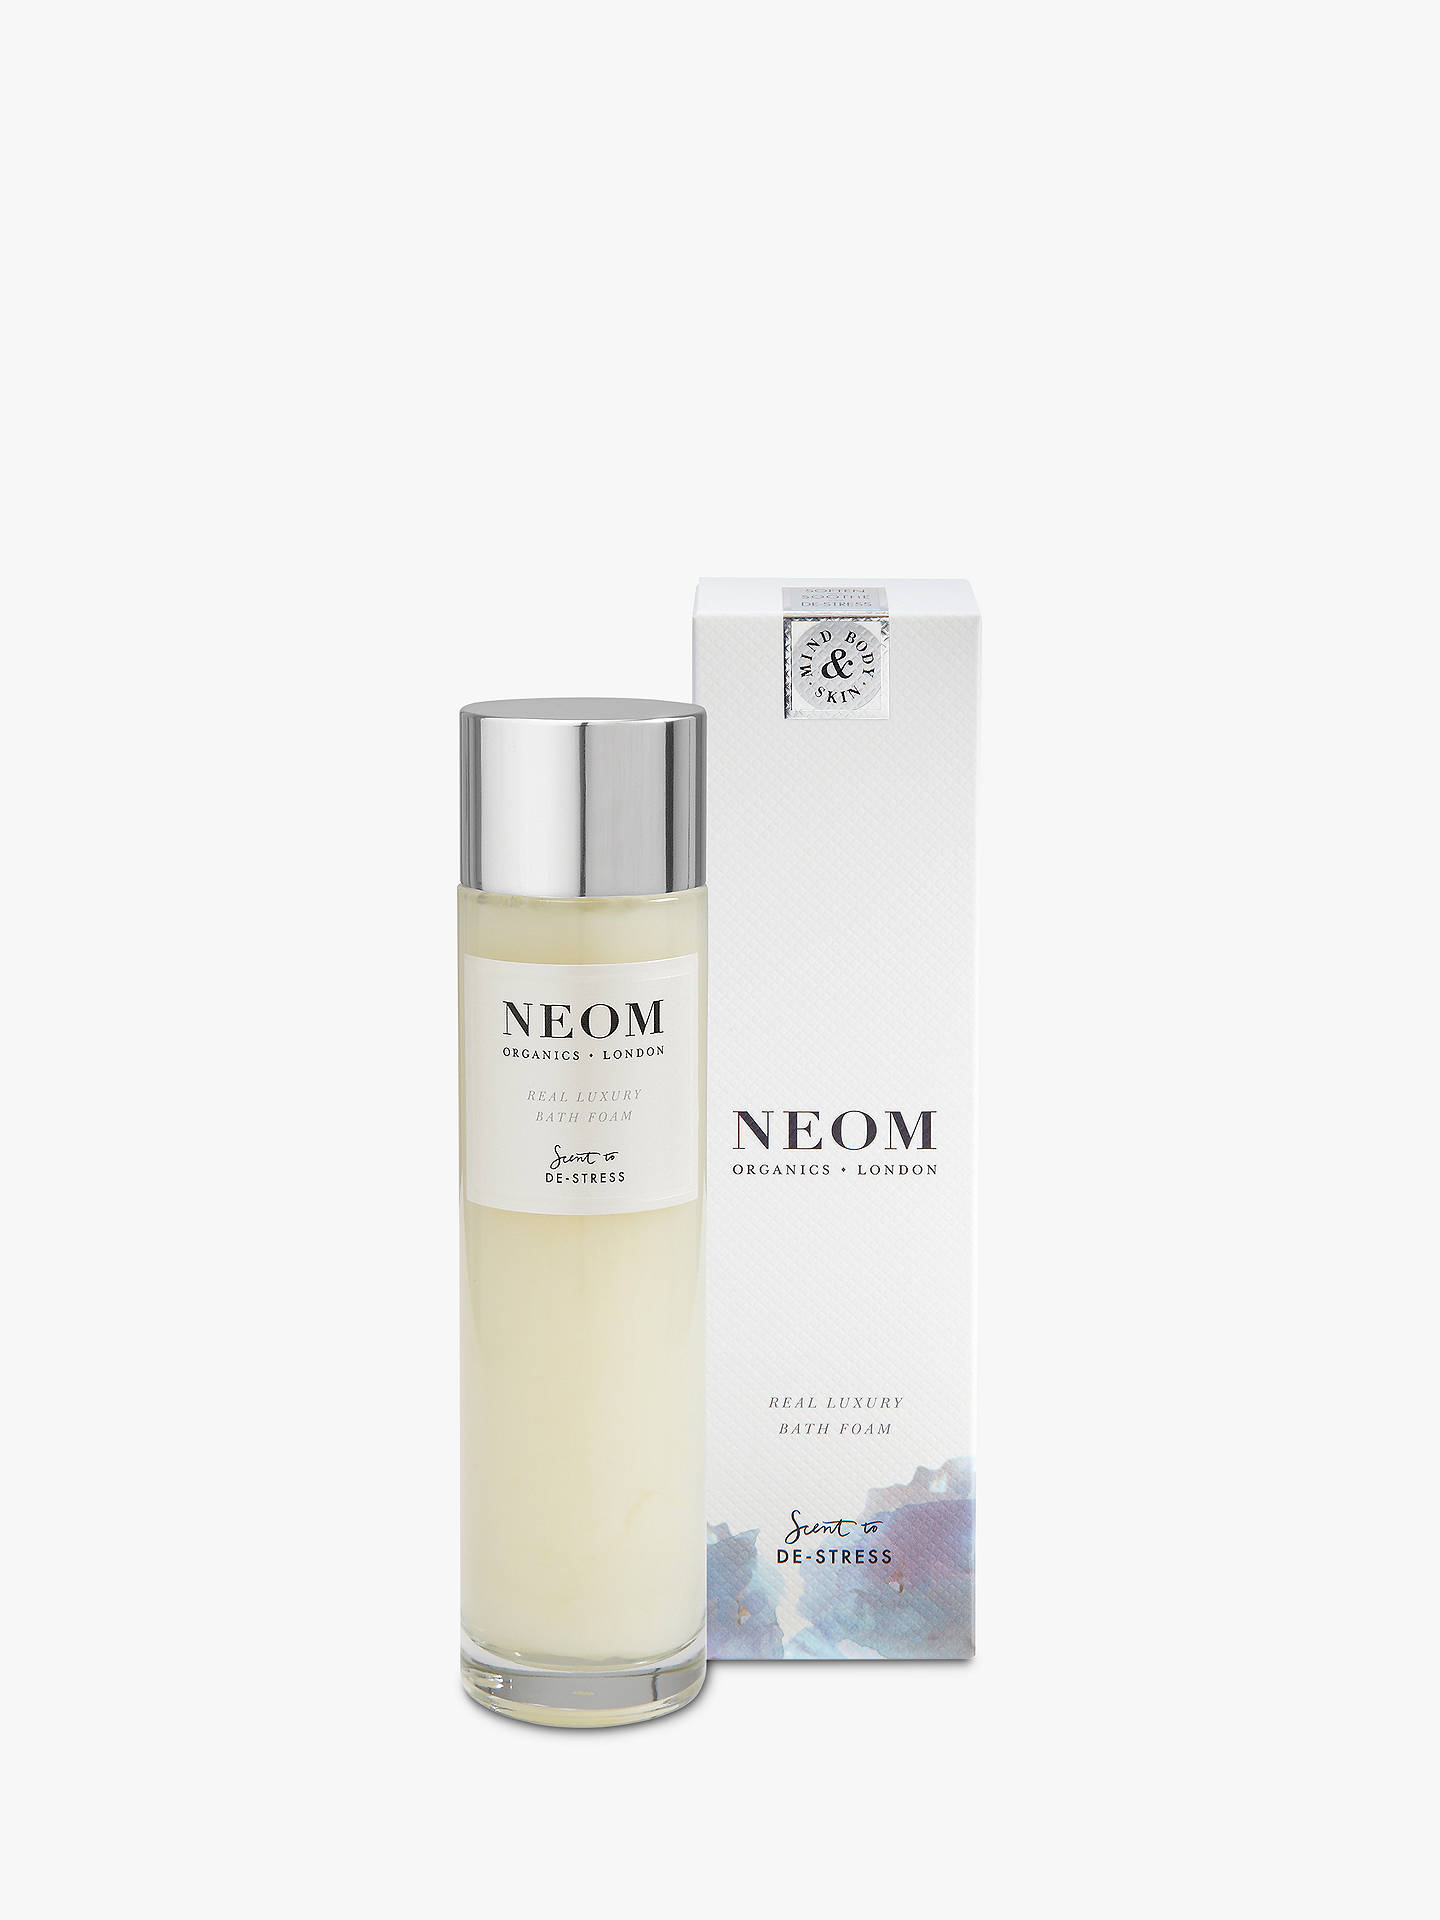 BuyNeom Organics London Real Luxury Bath Foam, 200ml Online at johnlewis.com